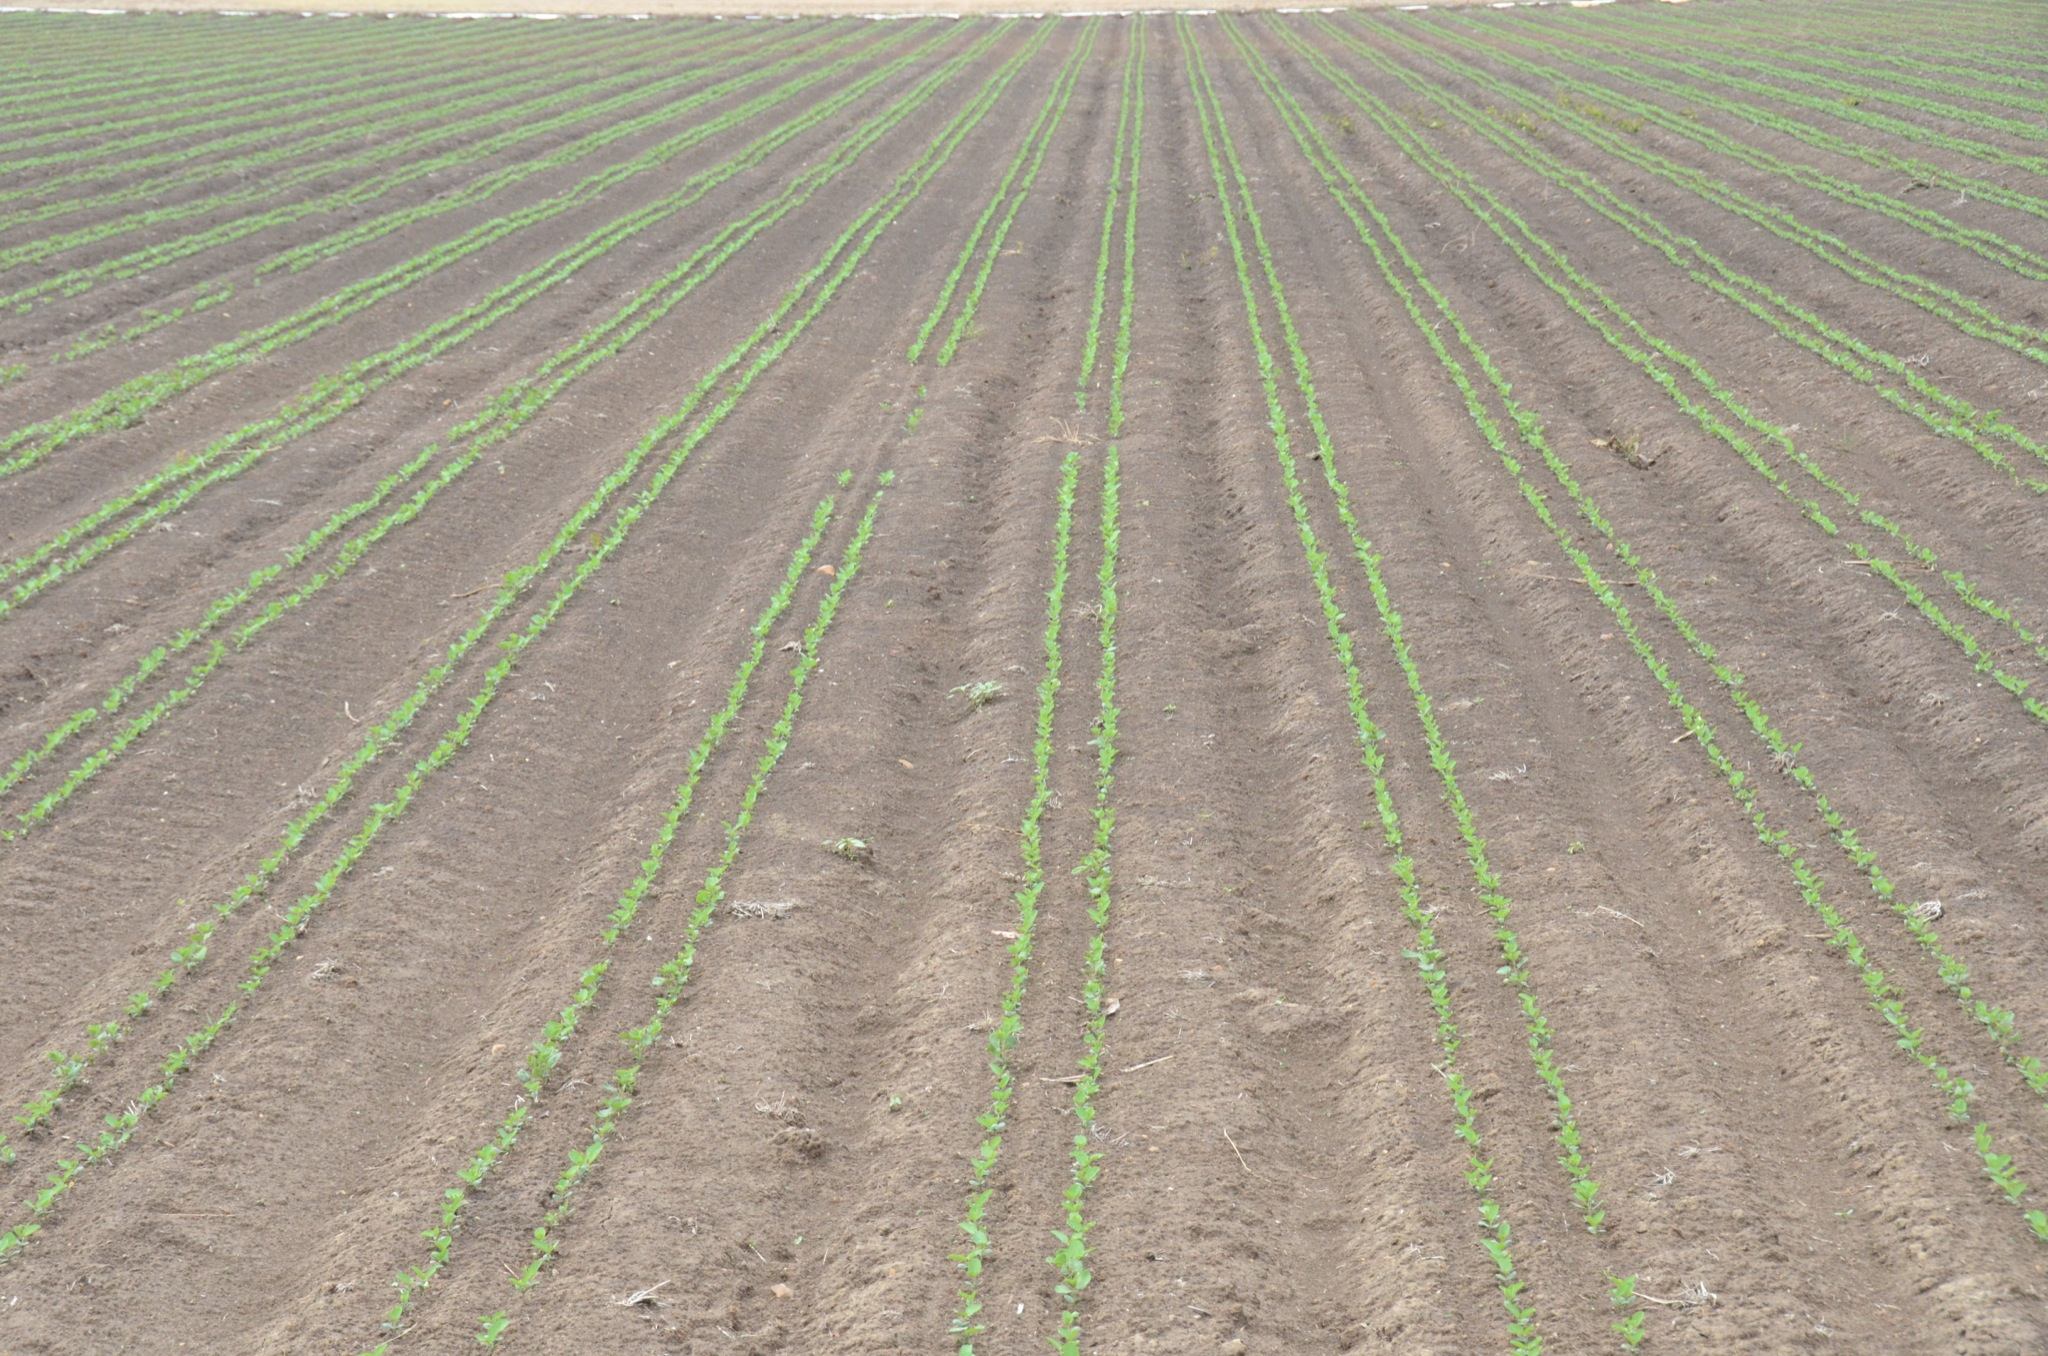 Twin-row soybean seedlings planted in the Mississippi Delta.